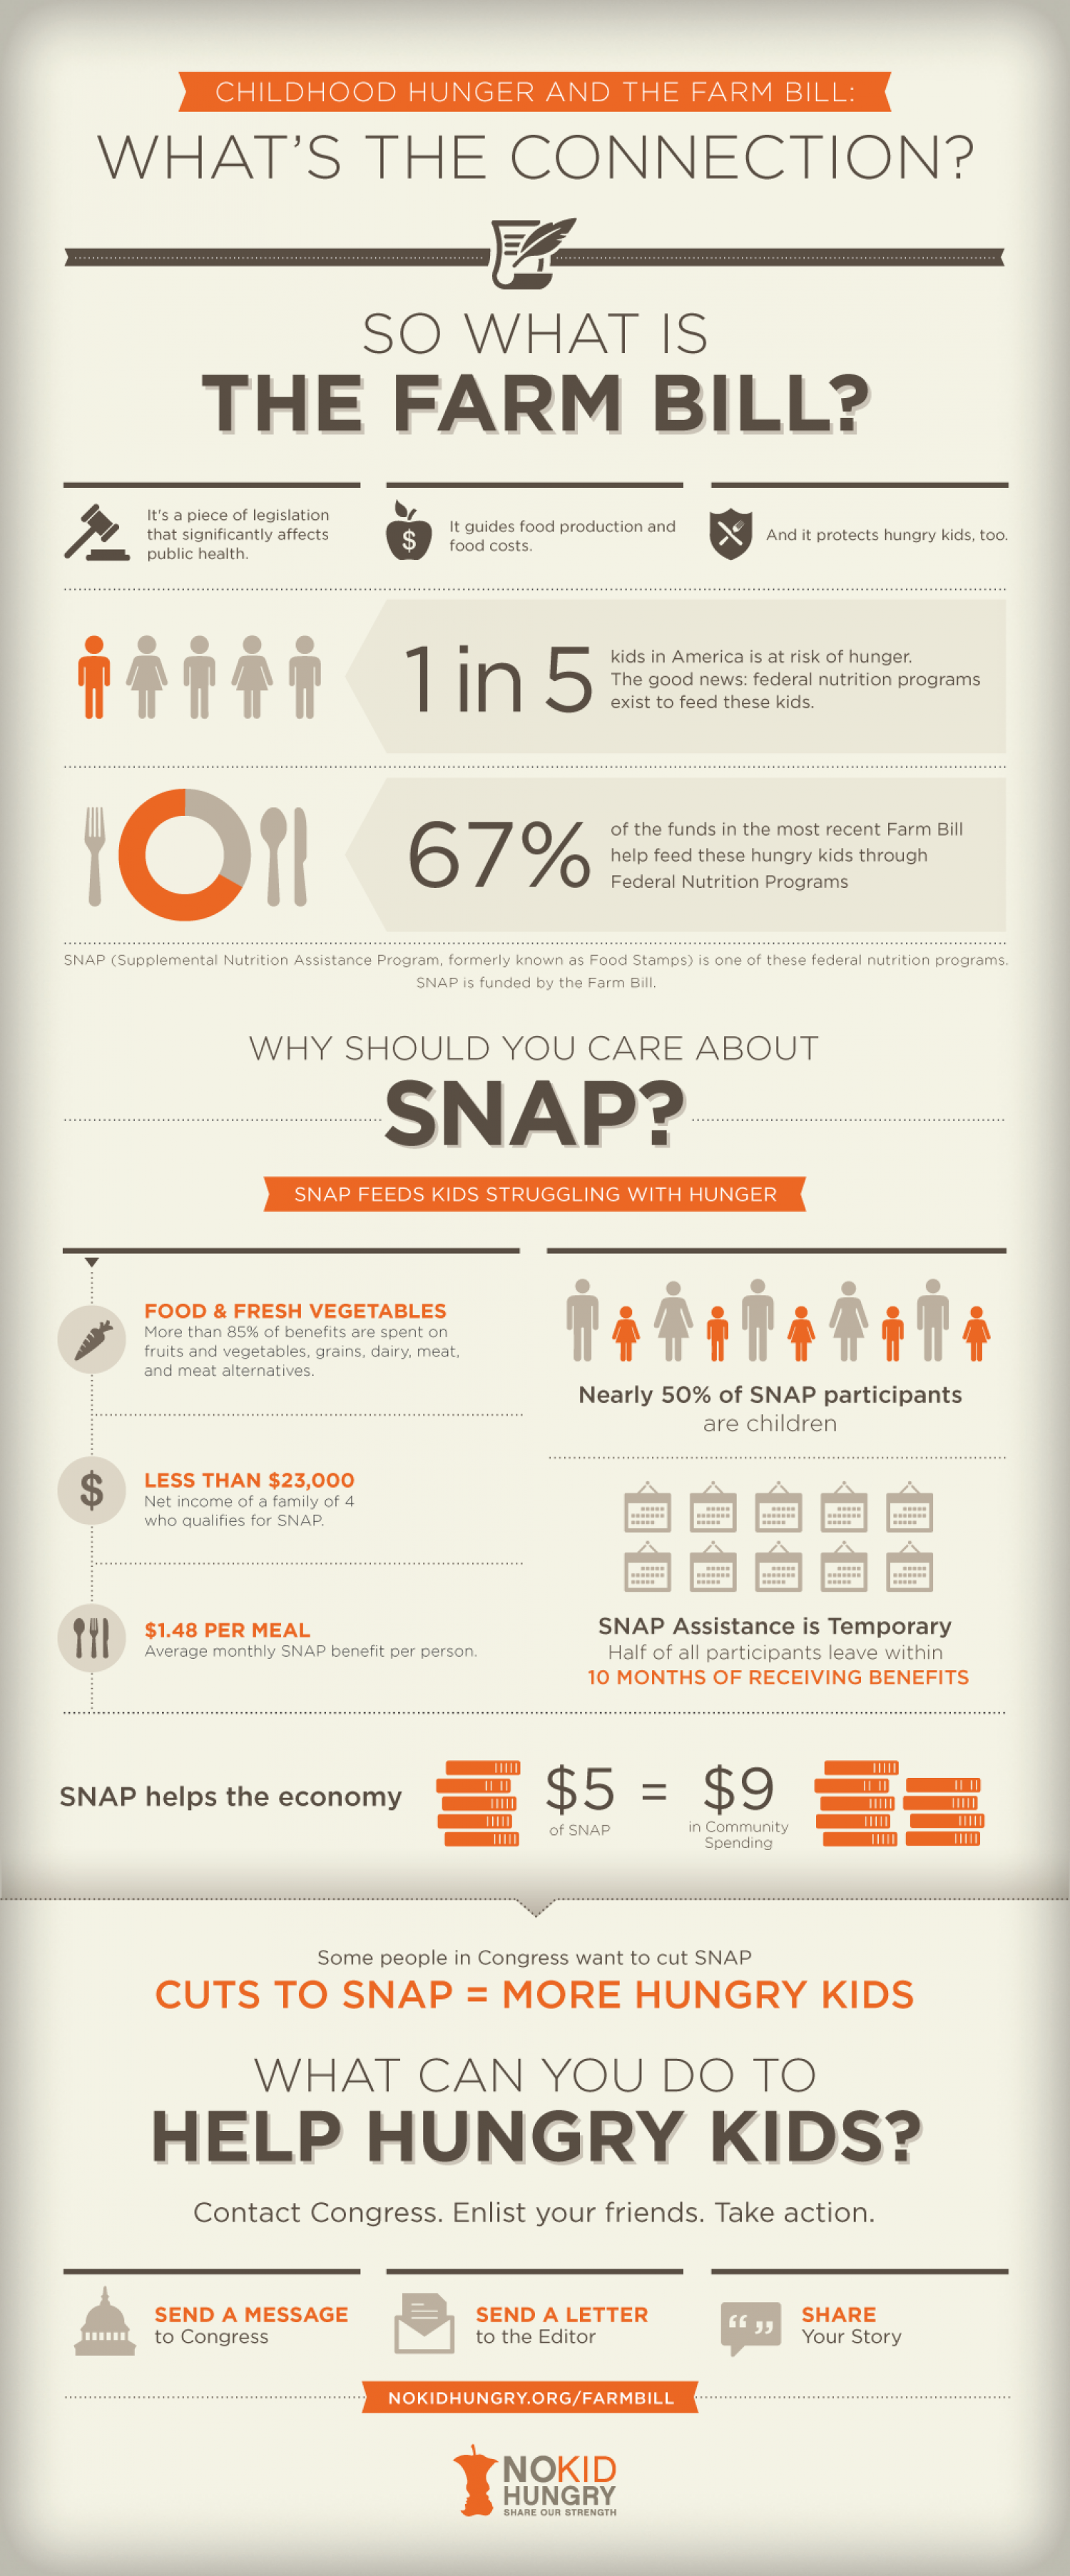 Cuts to SNAP = Hungry Children Infographic